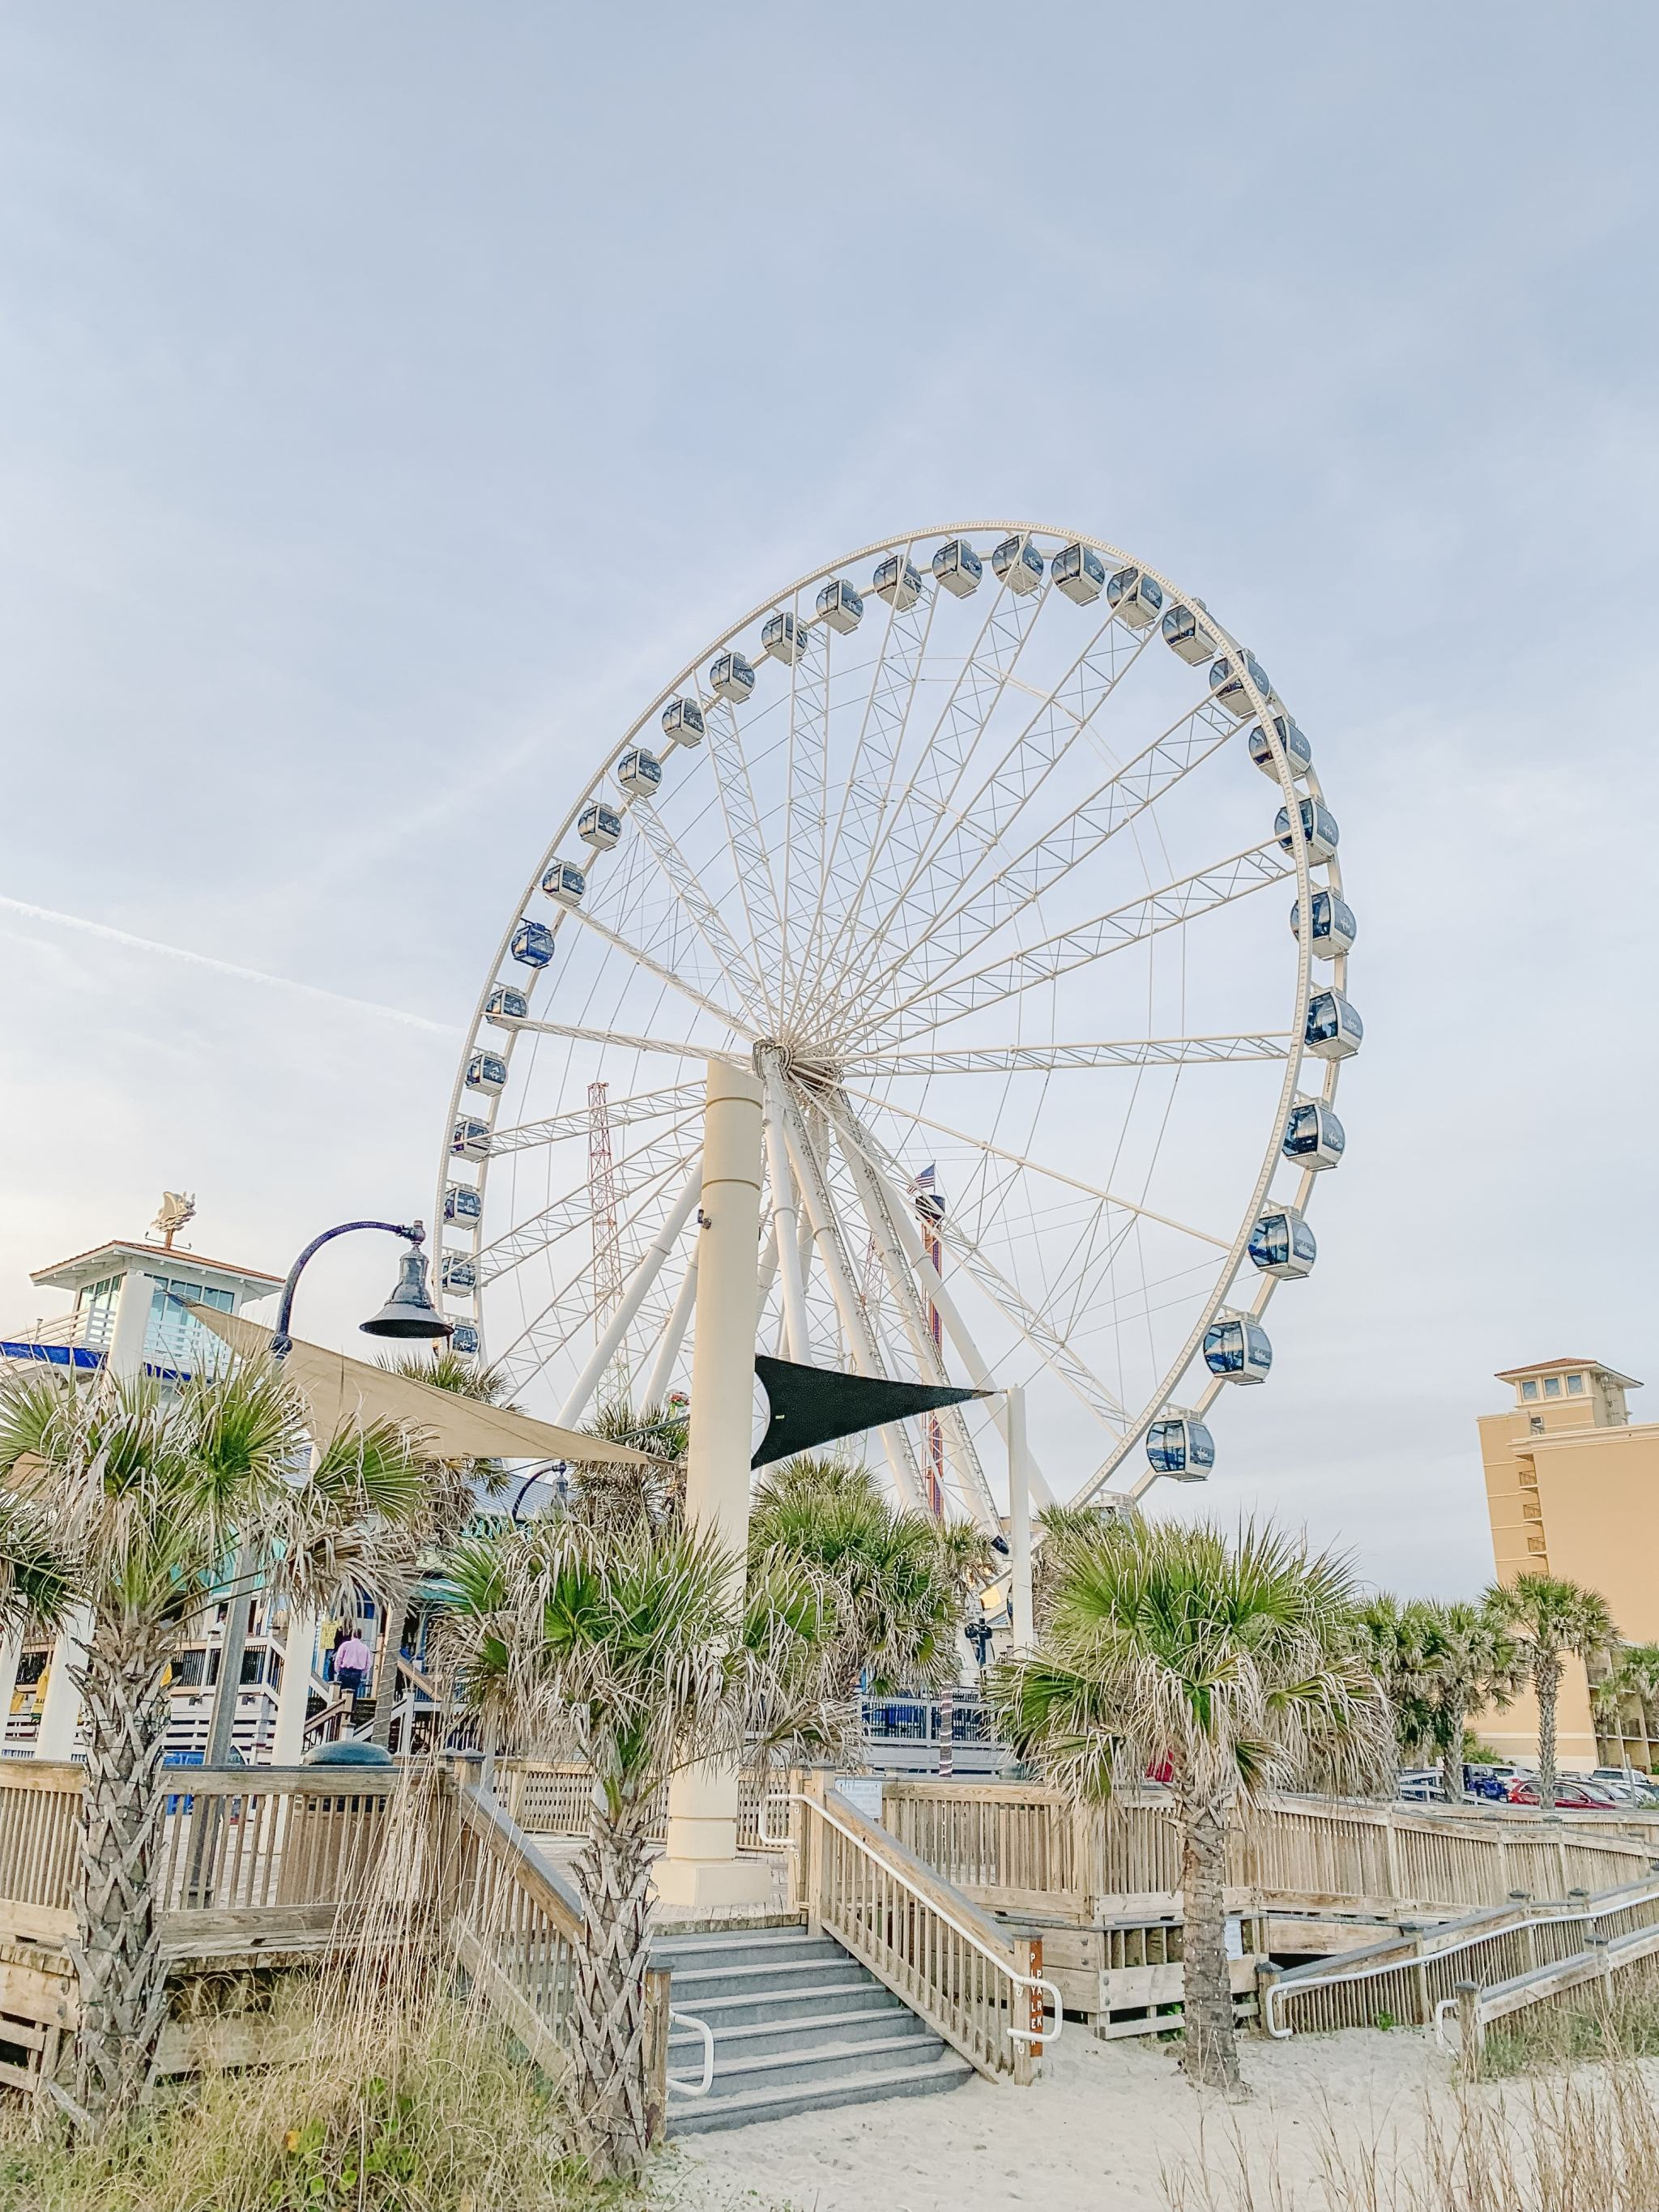 Bijuleni - Skywheel, Myrtle Beach